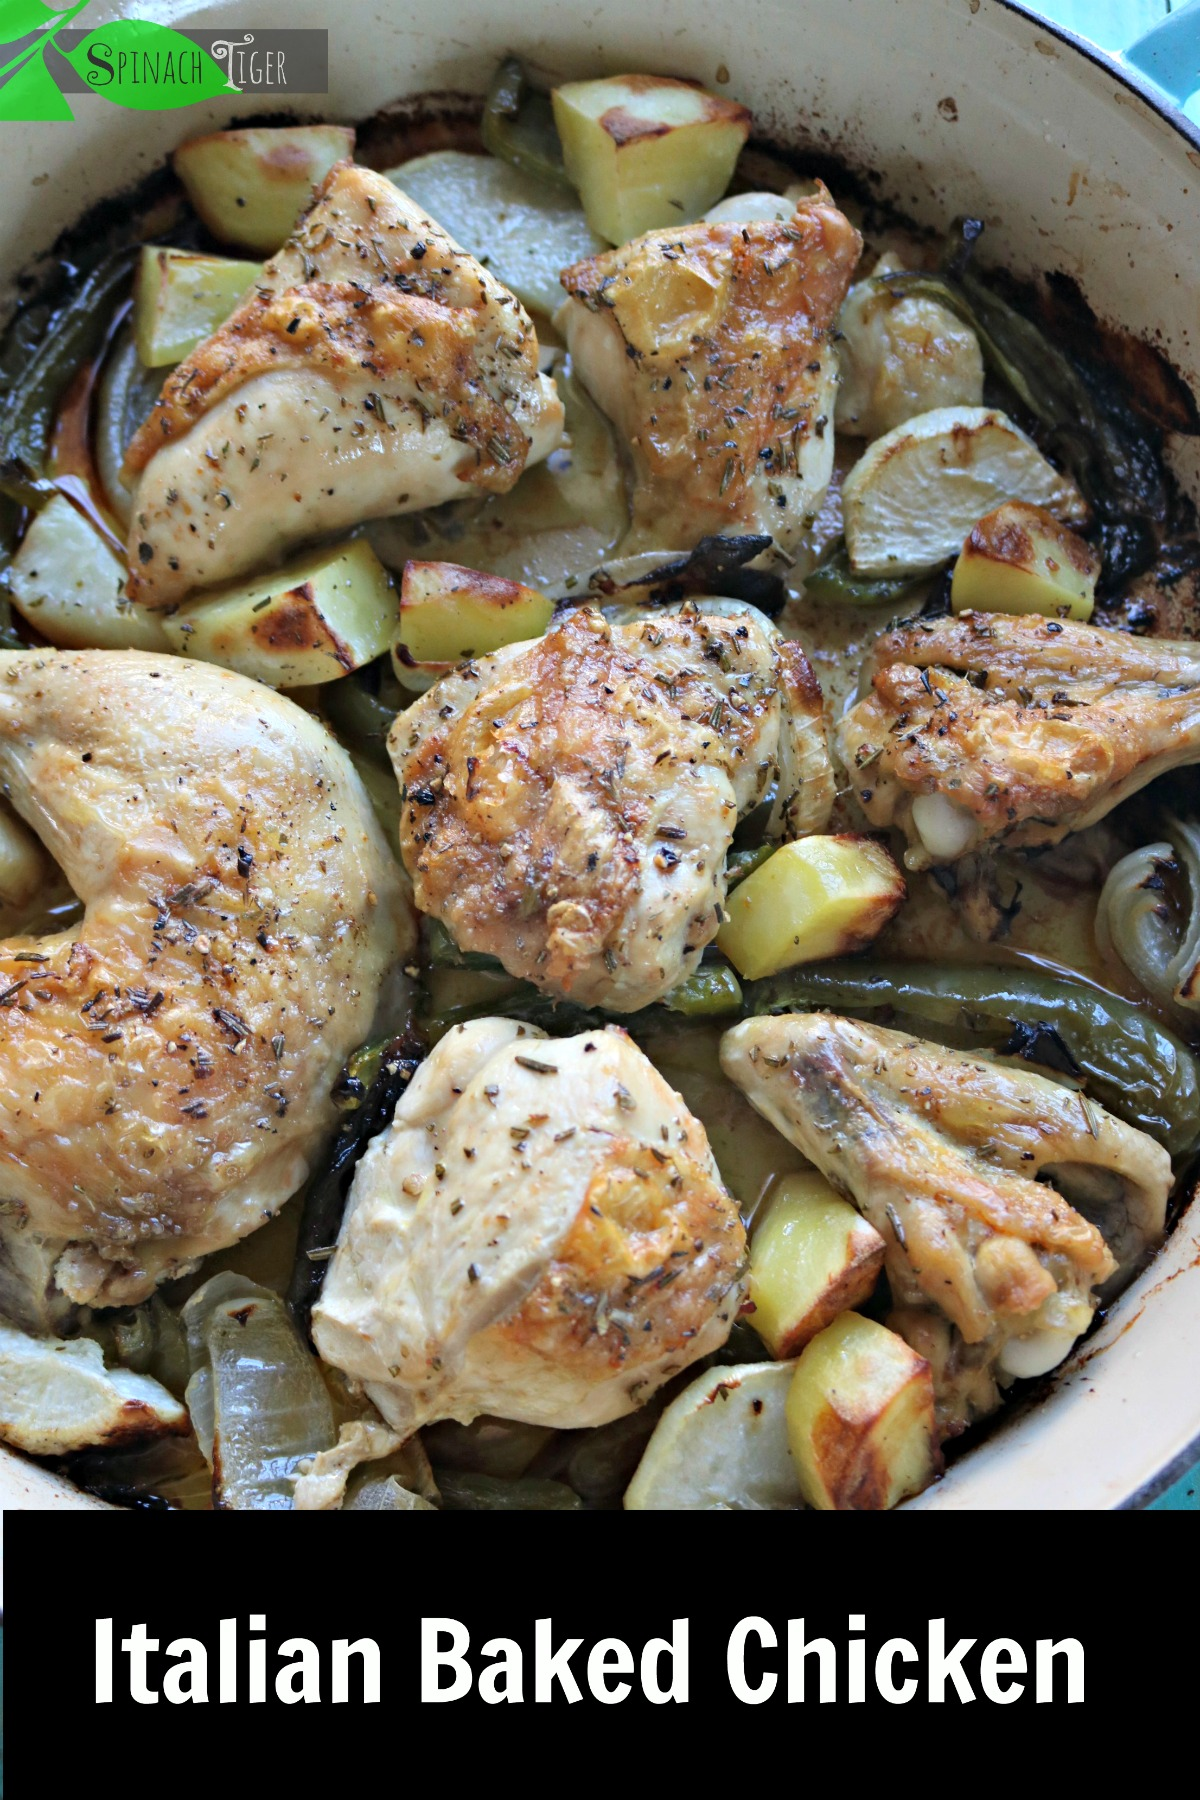 Italian baked chicken with green bell pepper, onion, rosemary, potatoes or turnips. Can be baked in sheetpan. #healthychickenrecipe #chickenrecipe #bakedchicken #spinachtiger #lowcarbdinner via @angelaroberts